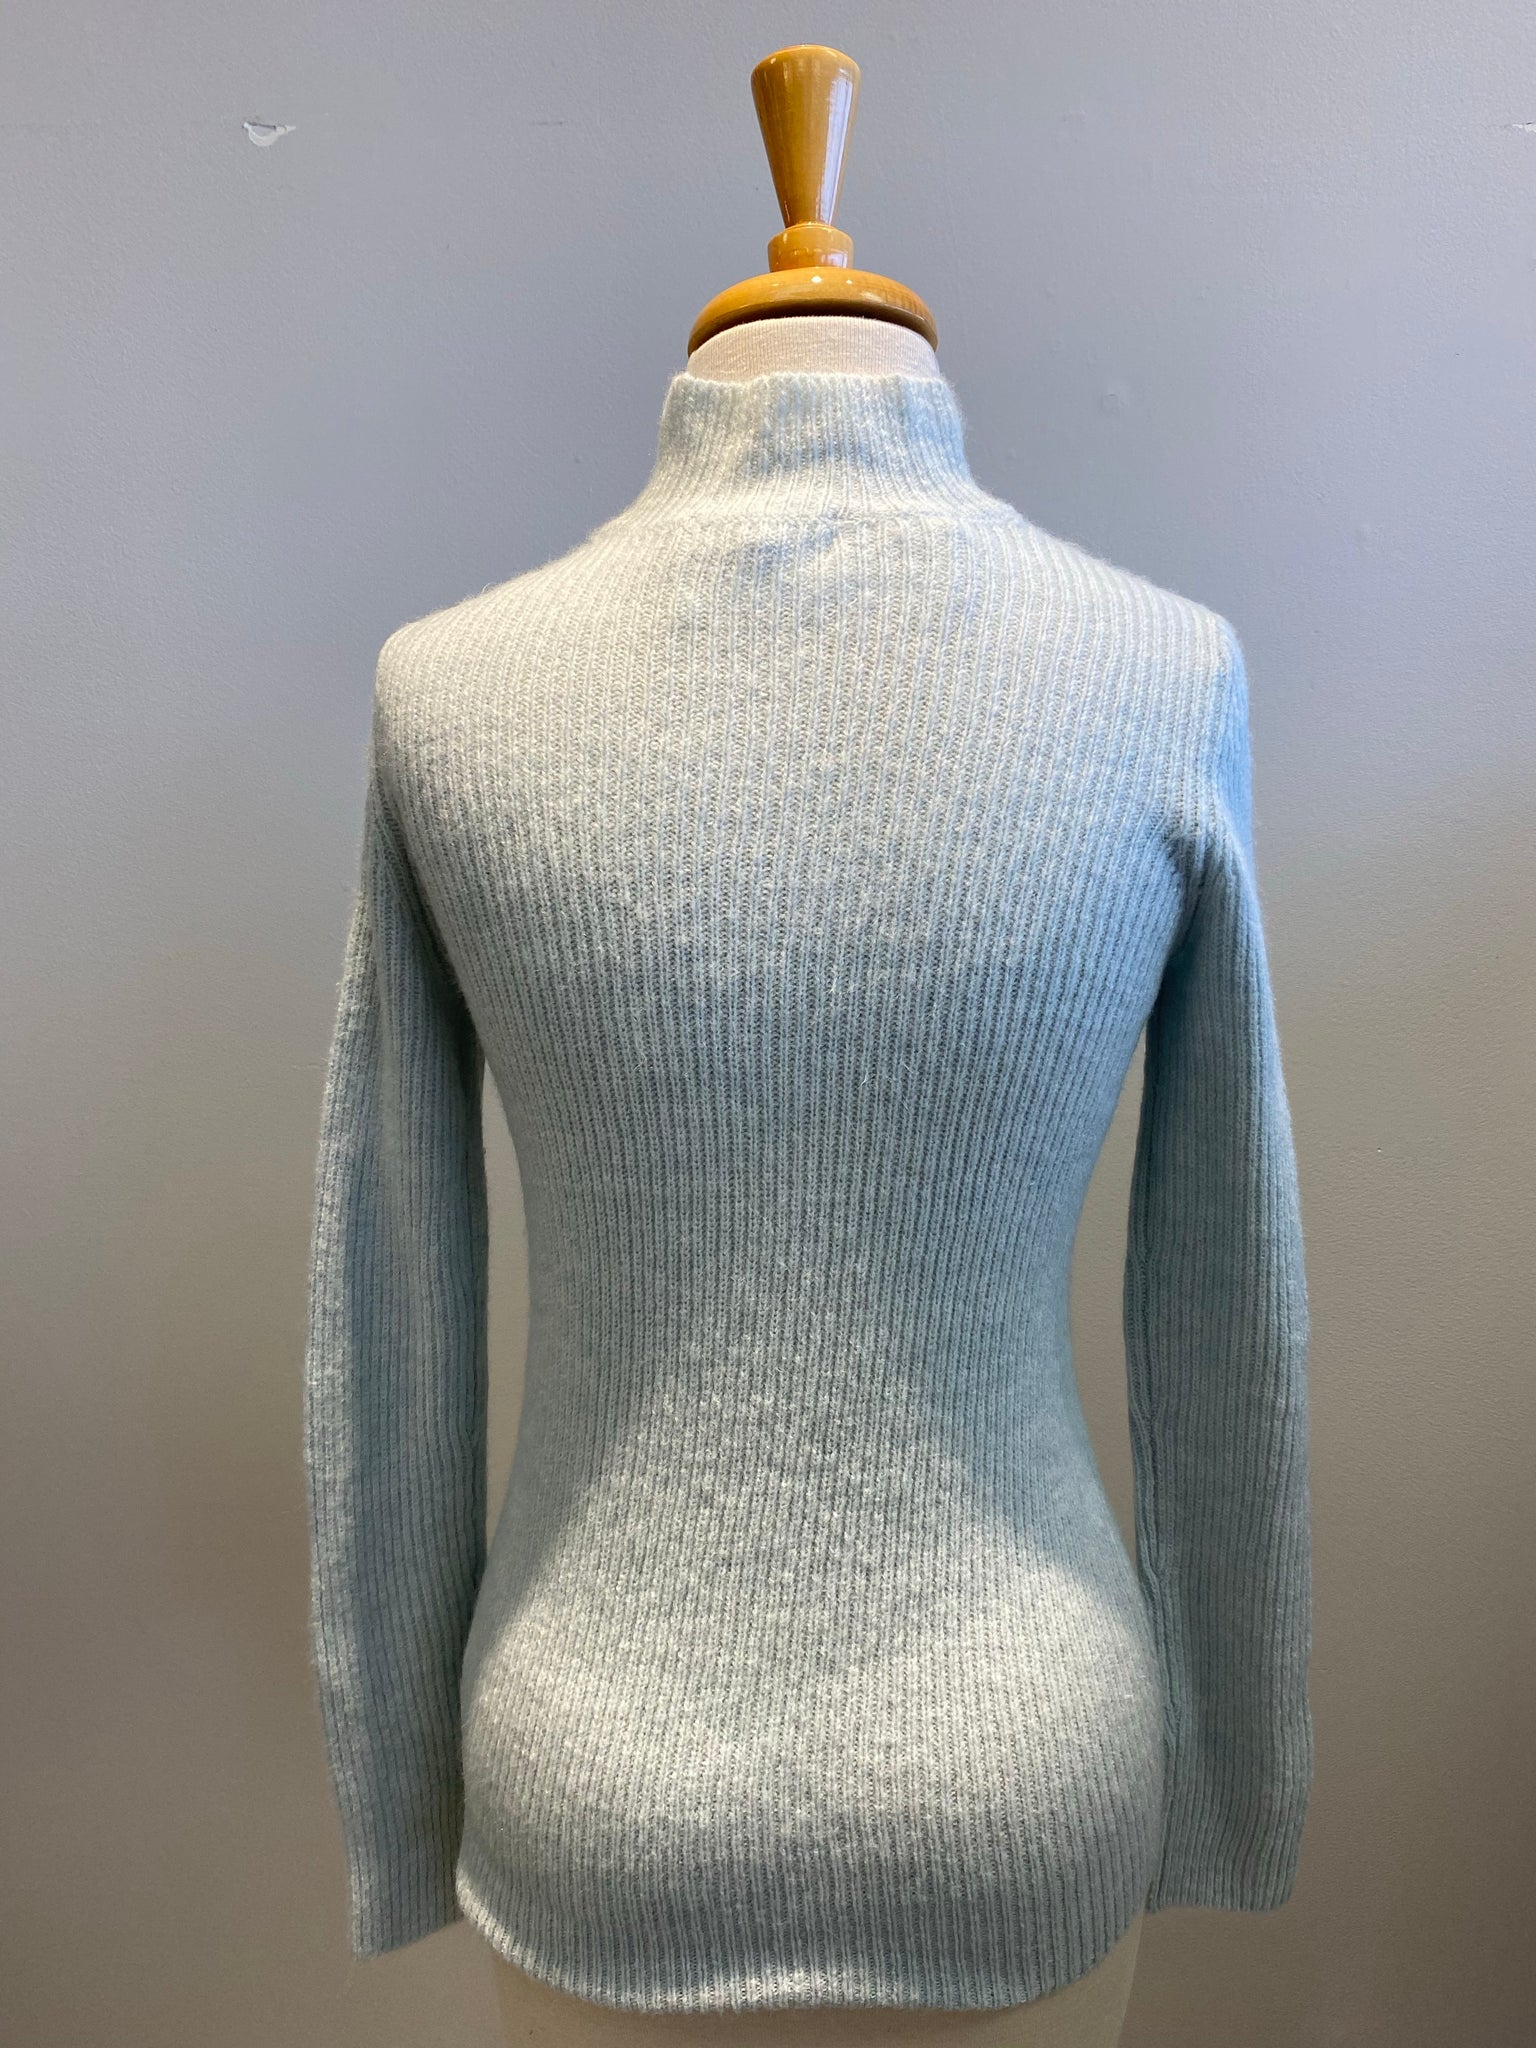 BB Dakota Chic Show Sweater - Showroom56